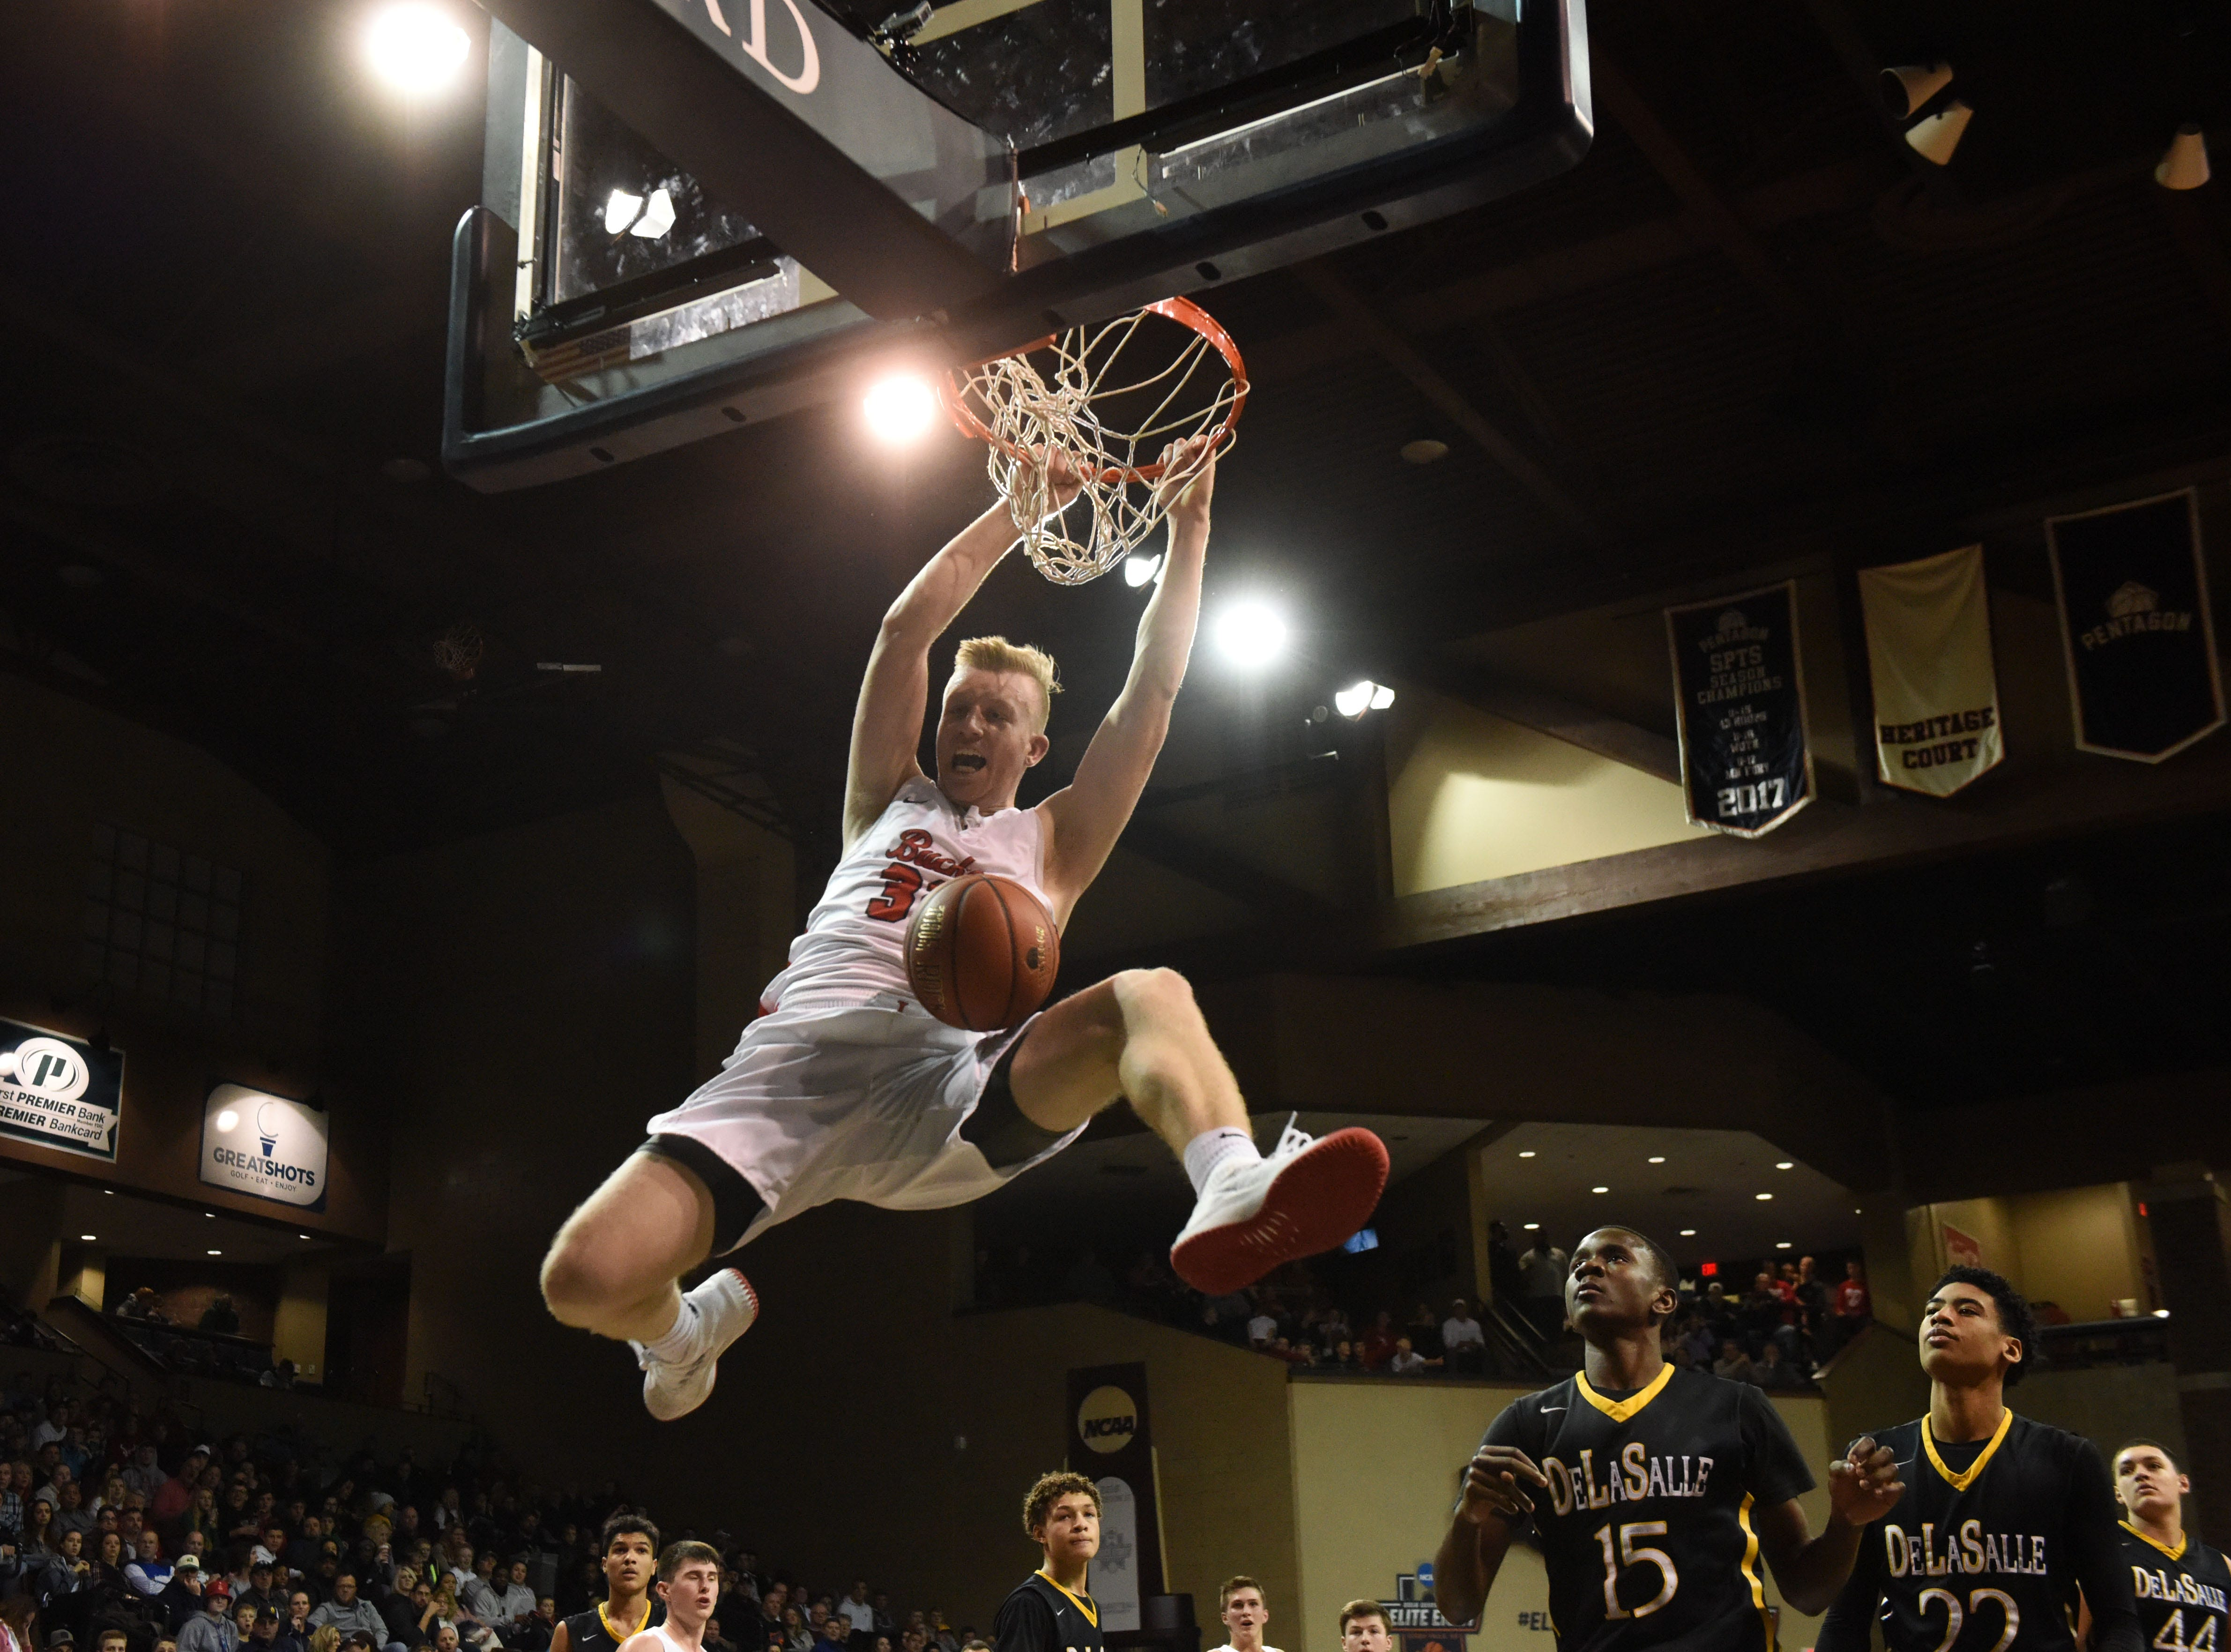 Yankton's Matthew Mors (32) slams home a dunk during a game against DeLaSalle at the Hoop City Classic at the Sanford Pentagon in Sioux Falls, S.D., Saturday, Dec. 29, 2018.